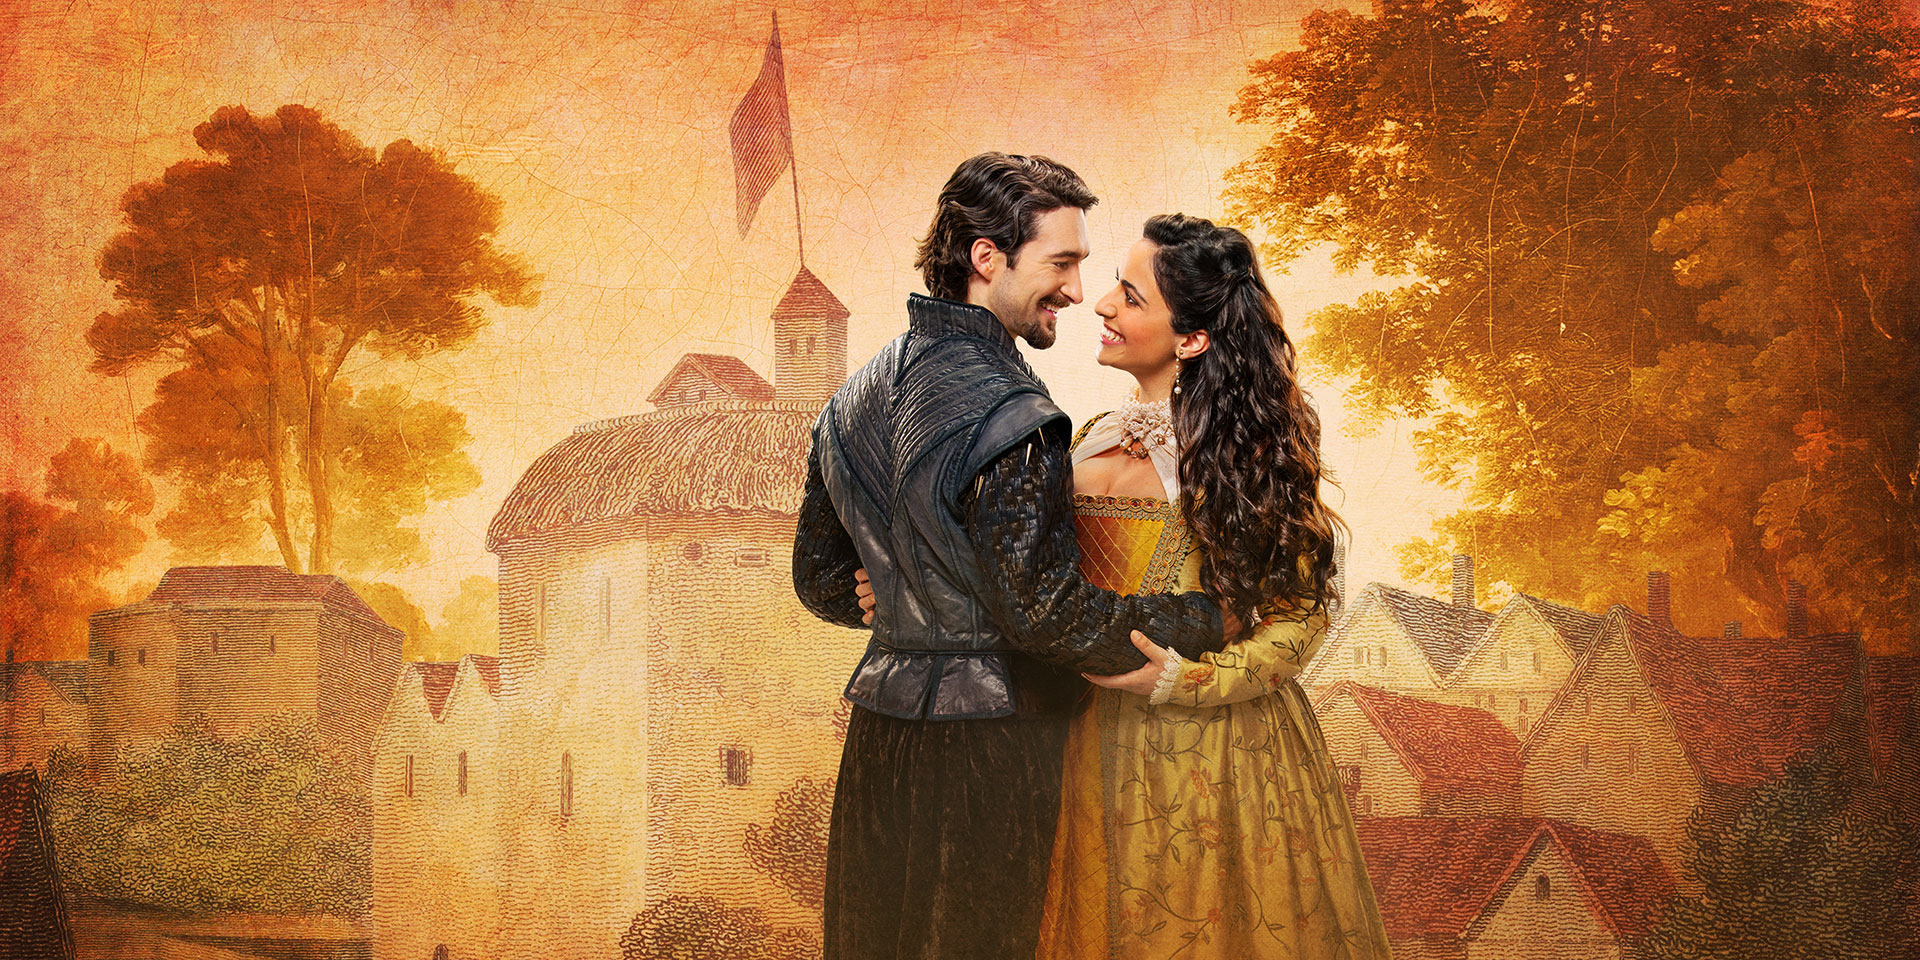 Shakespeare in Love Takes to the Stage in the 30th Season of Bard on the Beach